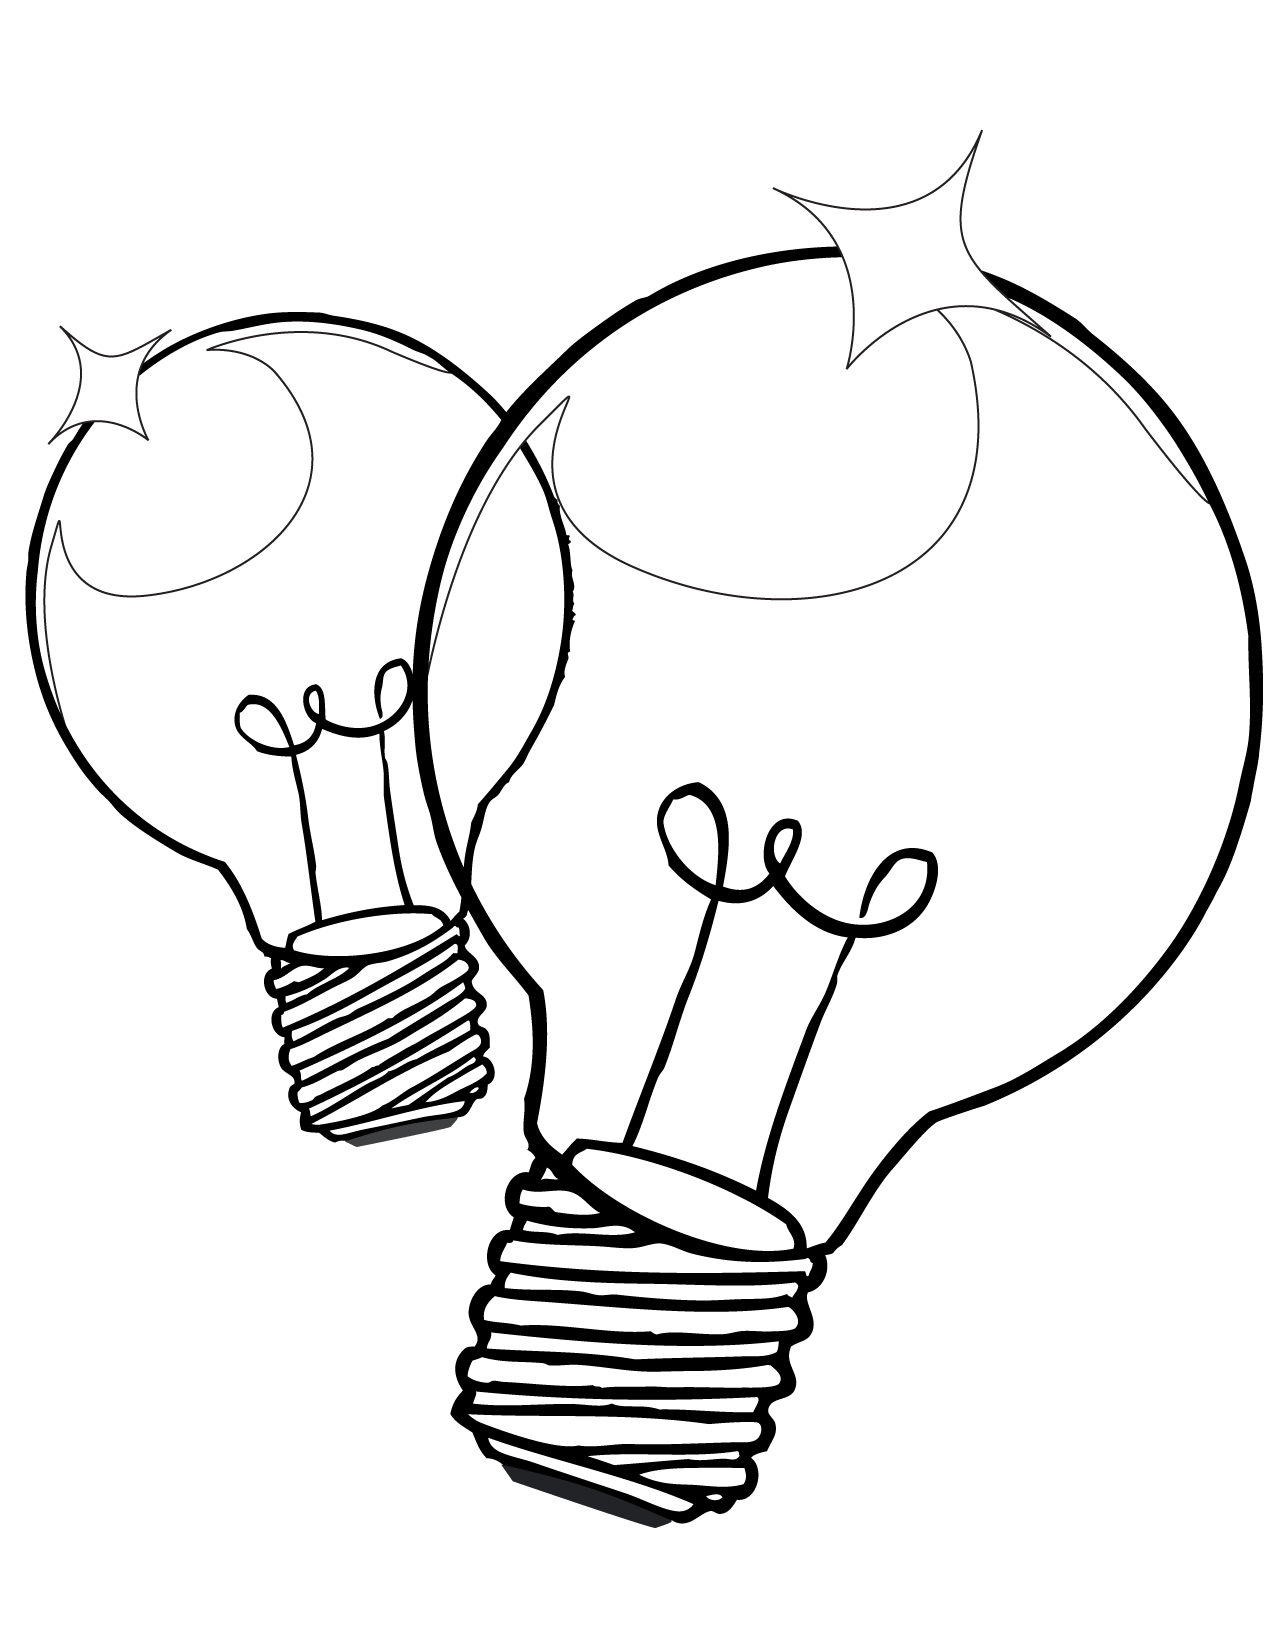 Flashlight Coloring Pages To Print Coloring Pages